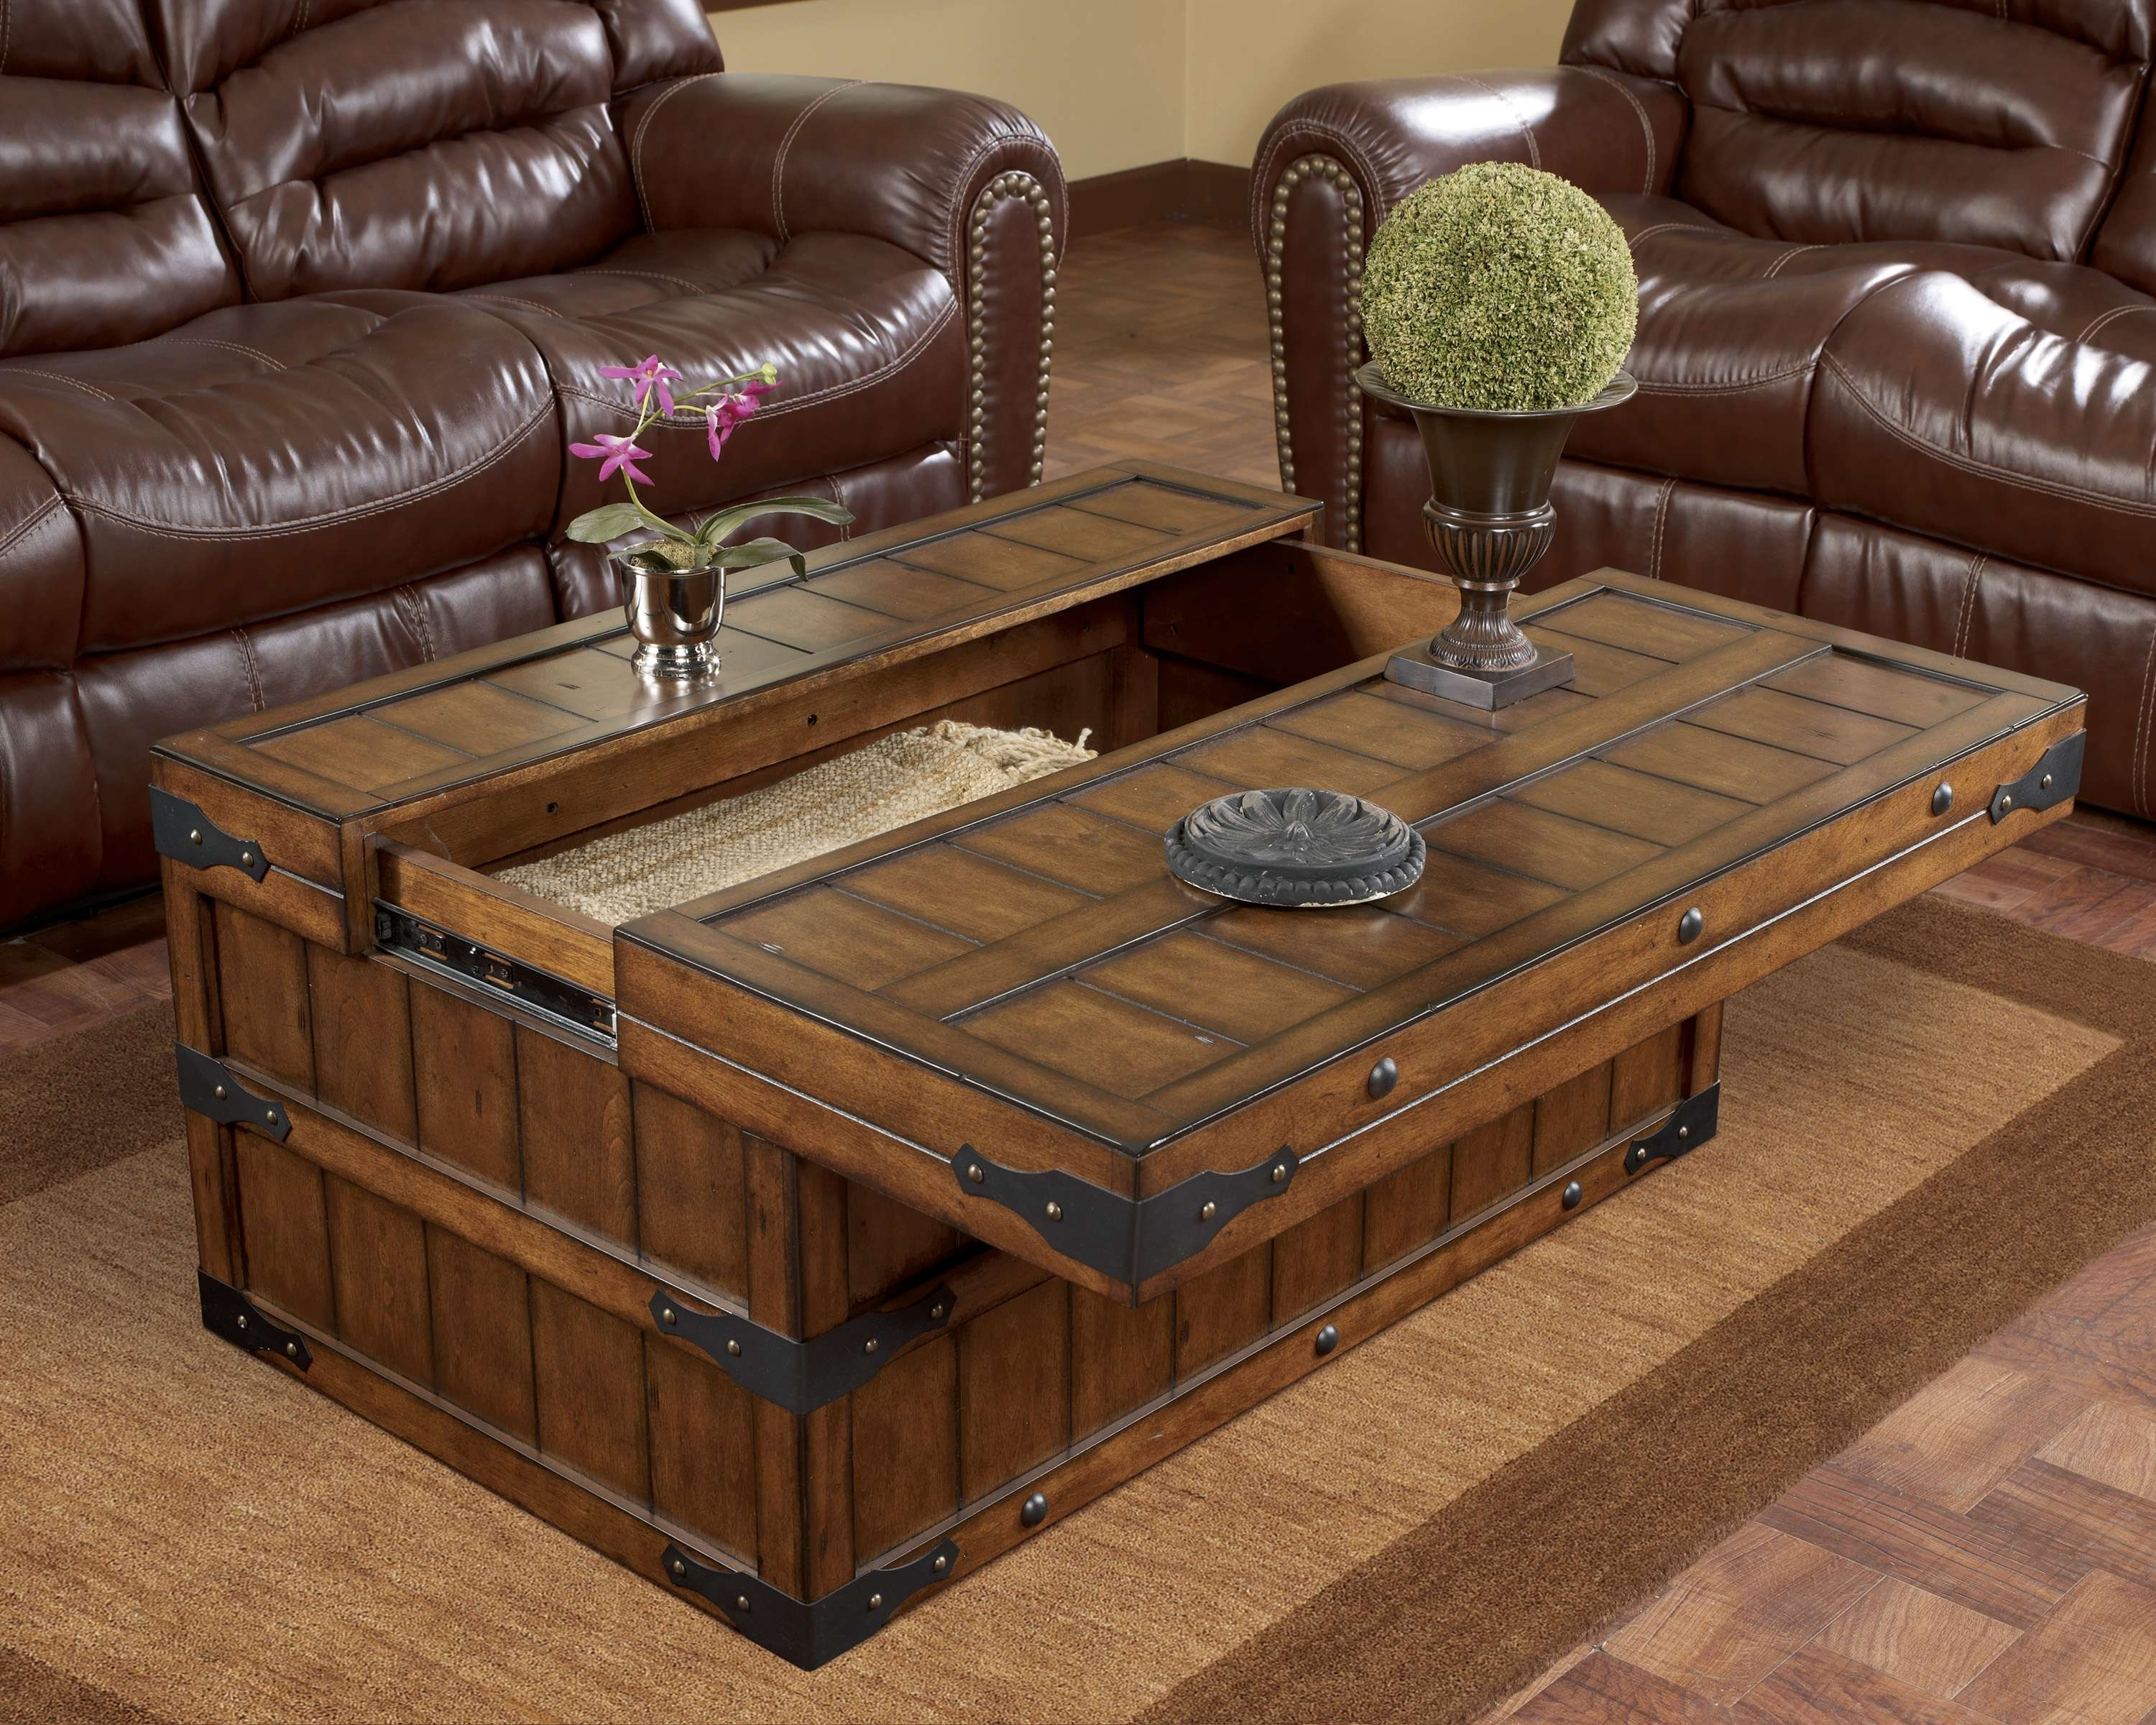 Coffee Table : Magnificent Farmhouse Style Coffee Table Reclaimed Throughout Most Recently Released Antique Rustic Coffee Tables (View 2 of 20)